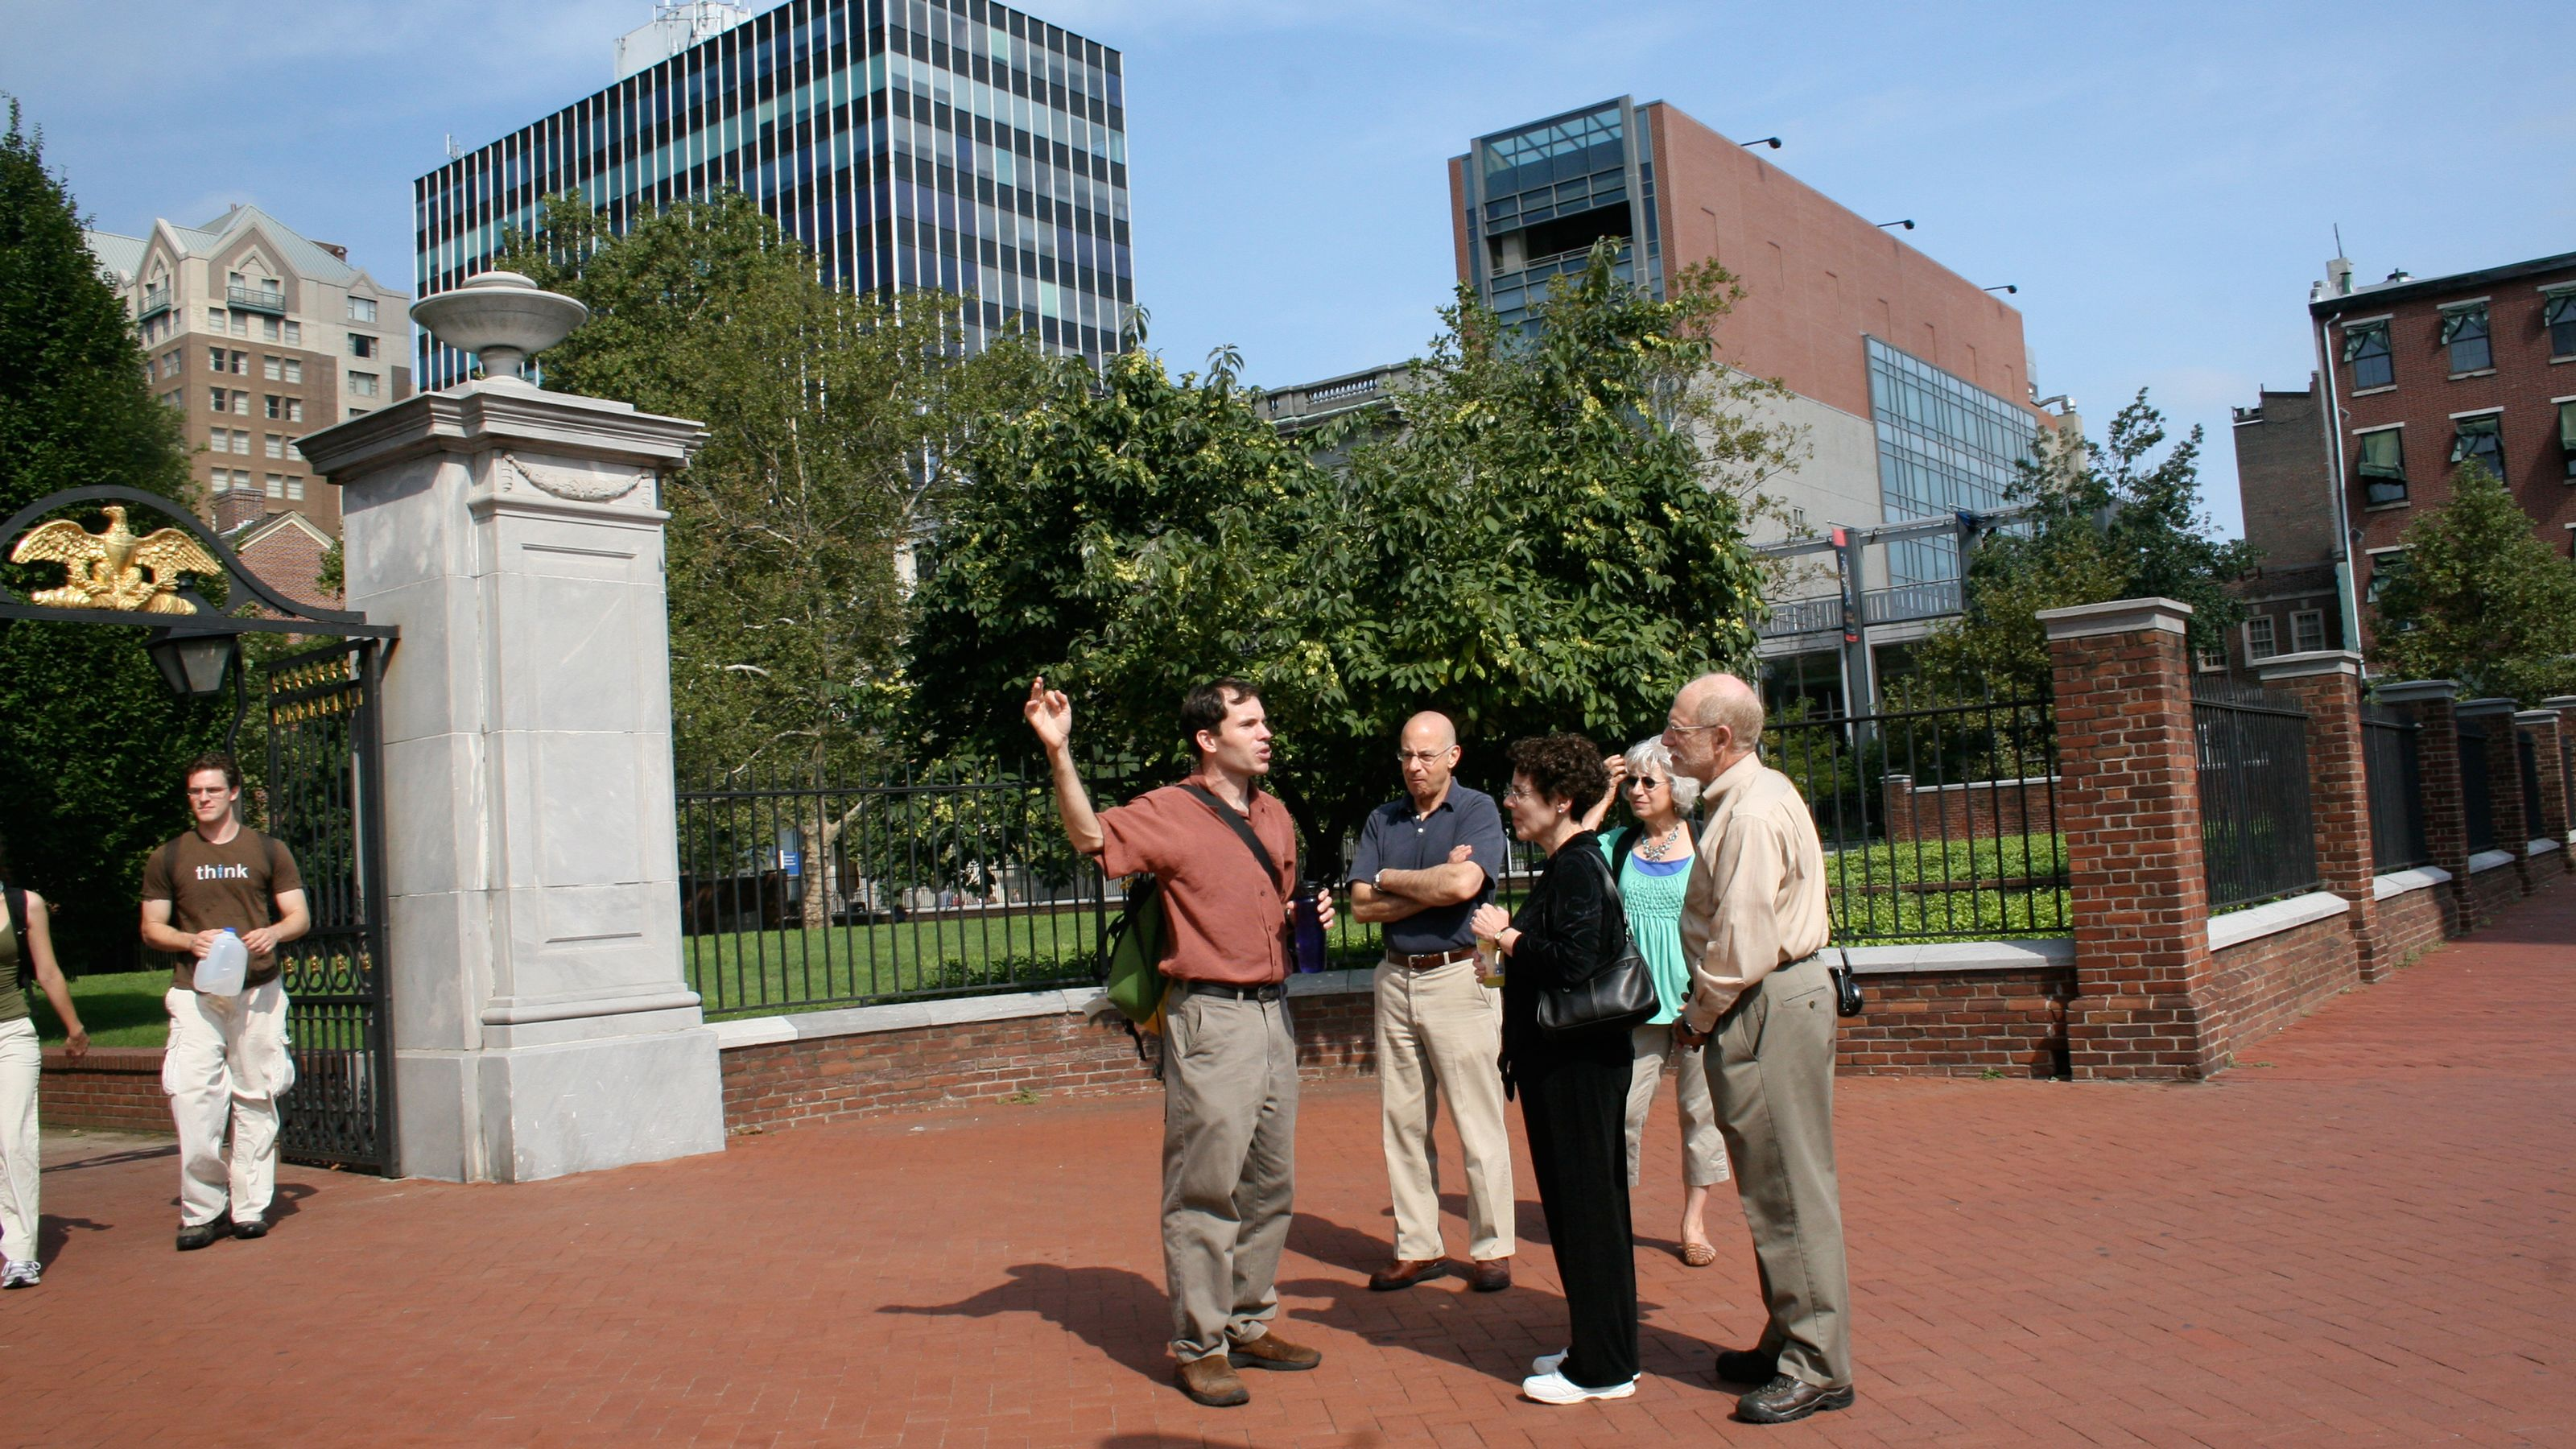 Tour guide with group in a red brick courtyard in Philadelphia